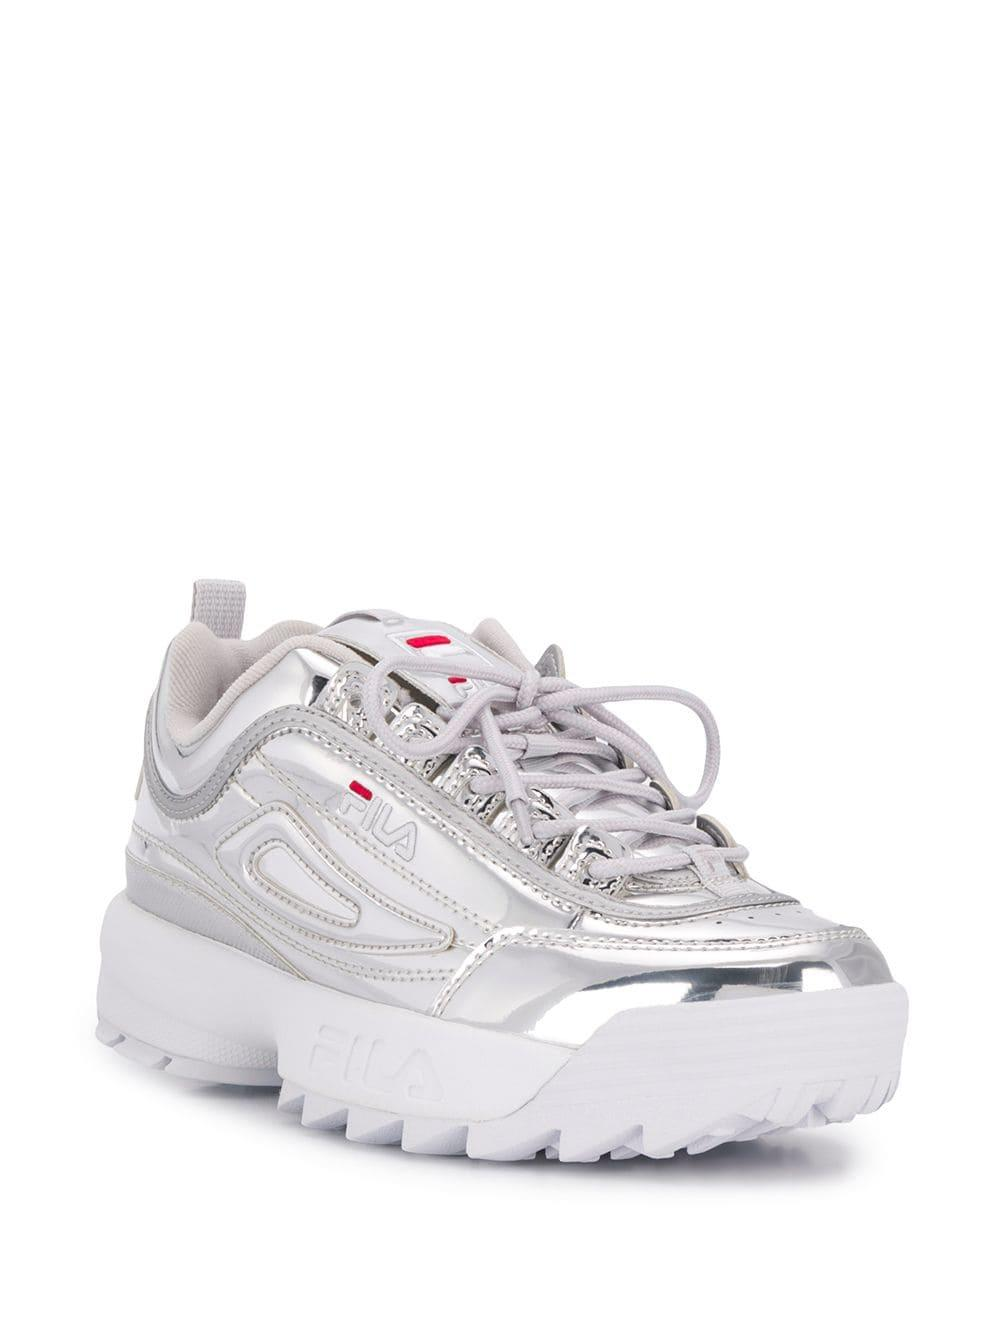 83f9e5d4952e Lyst - Fila Disruptor Sneakers in Metallic